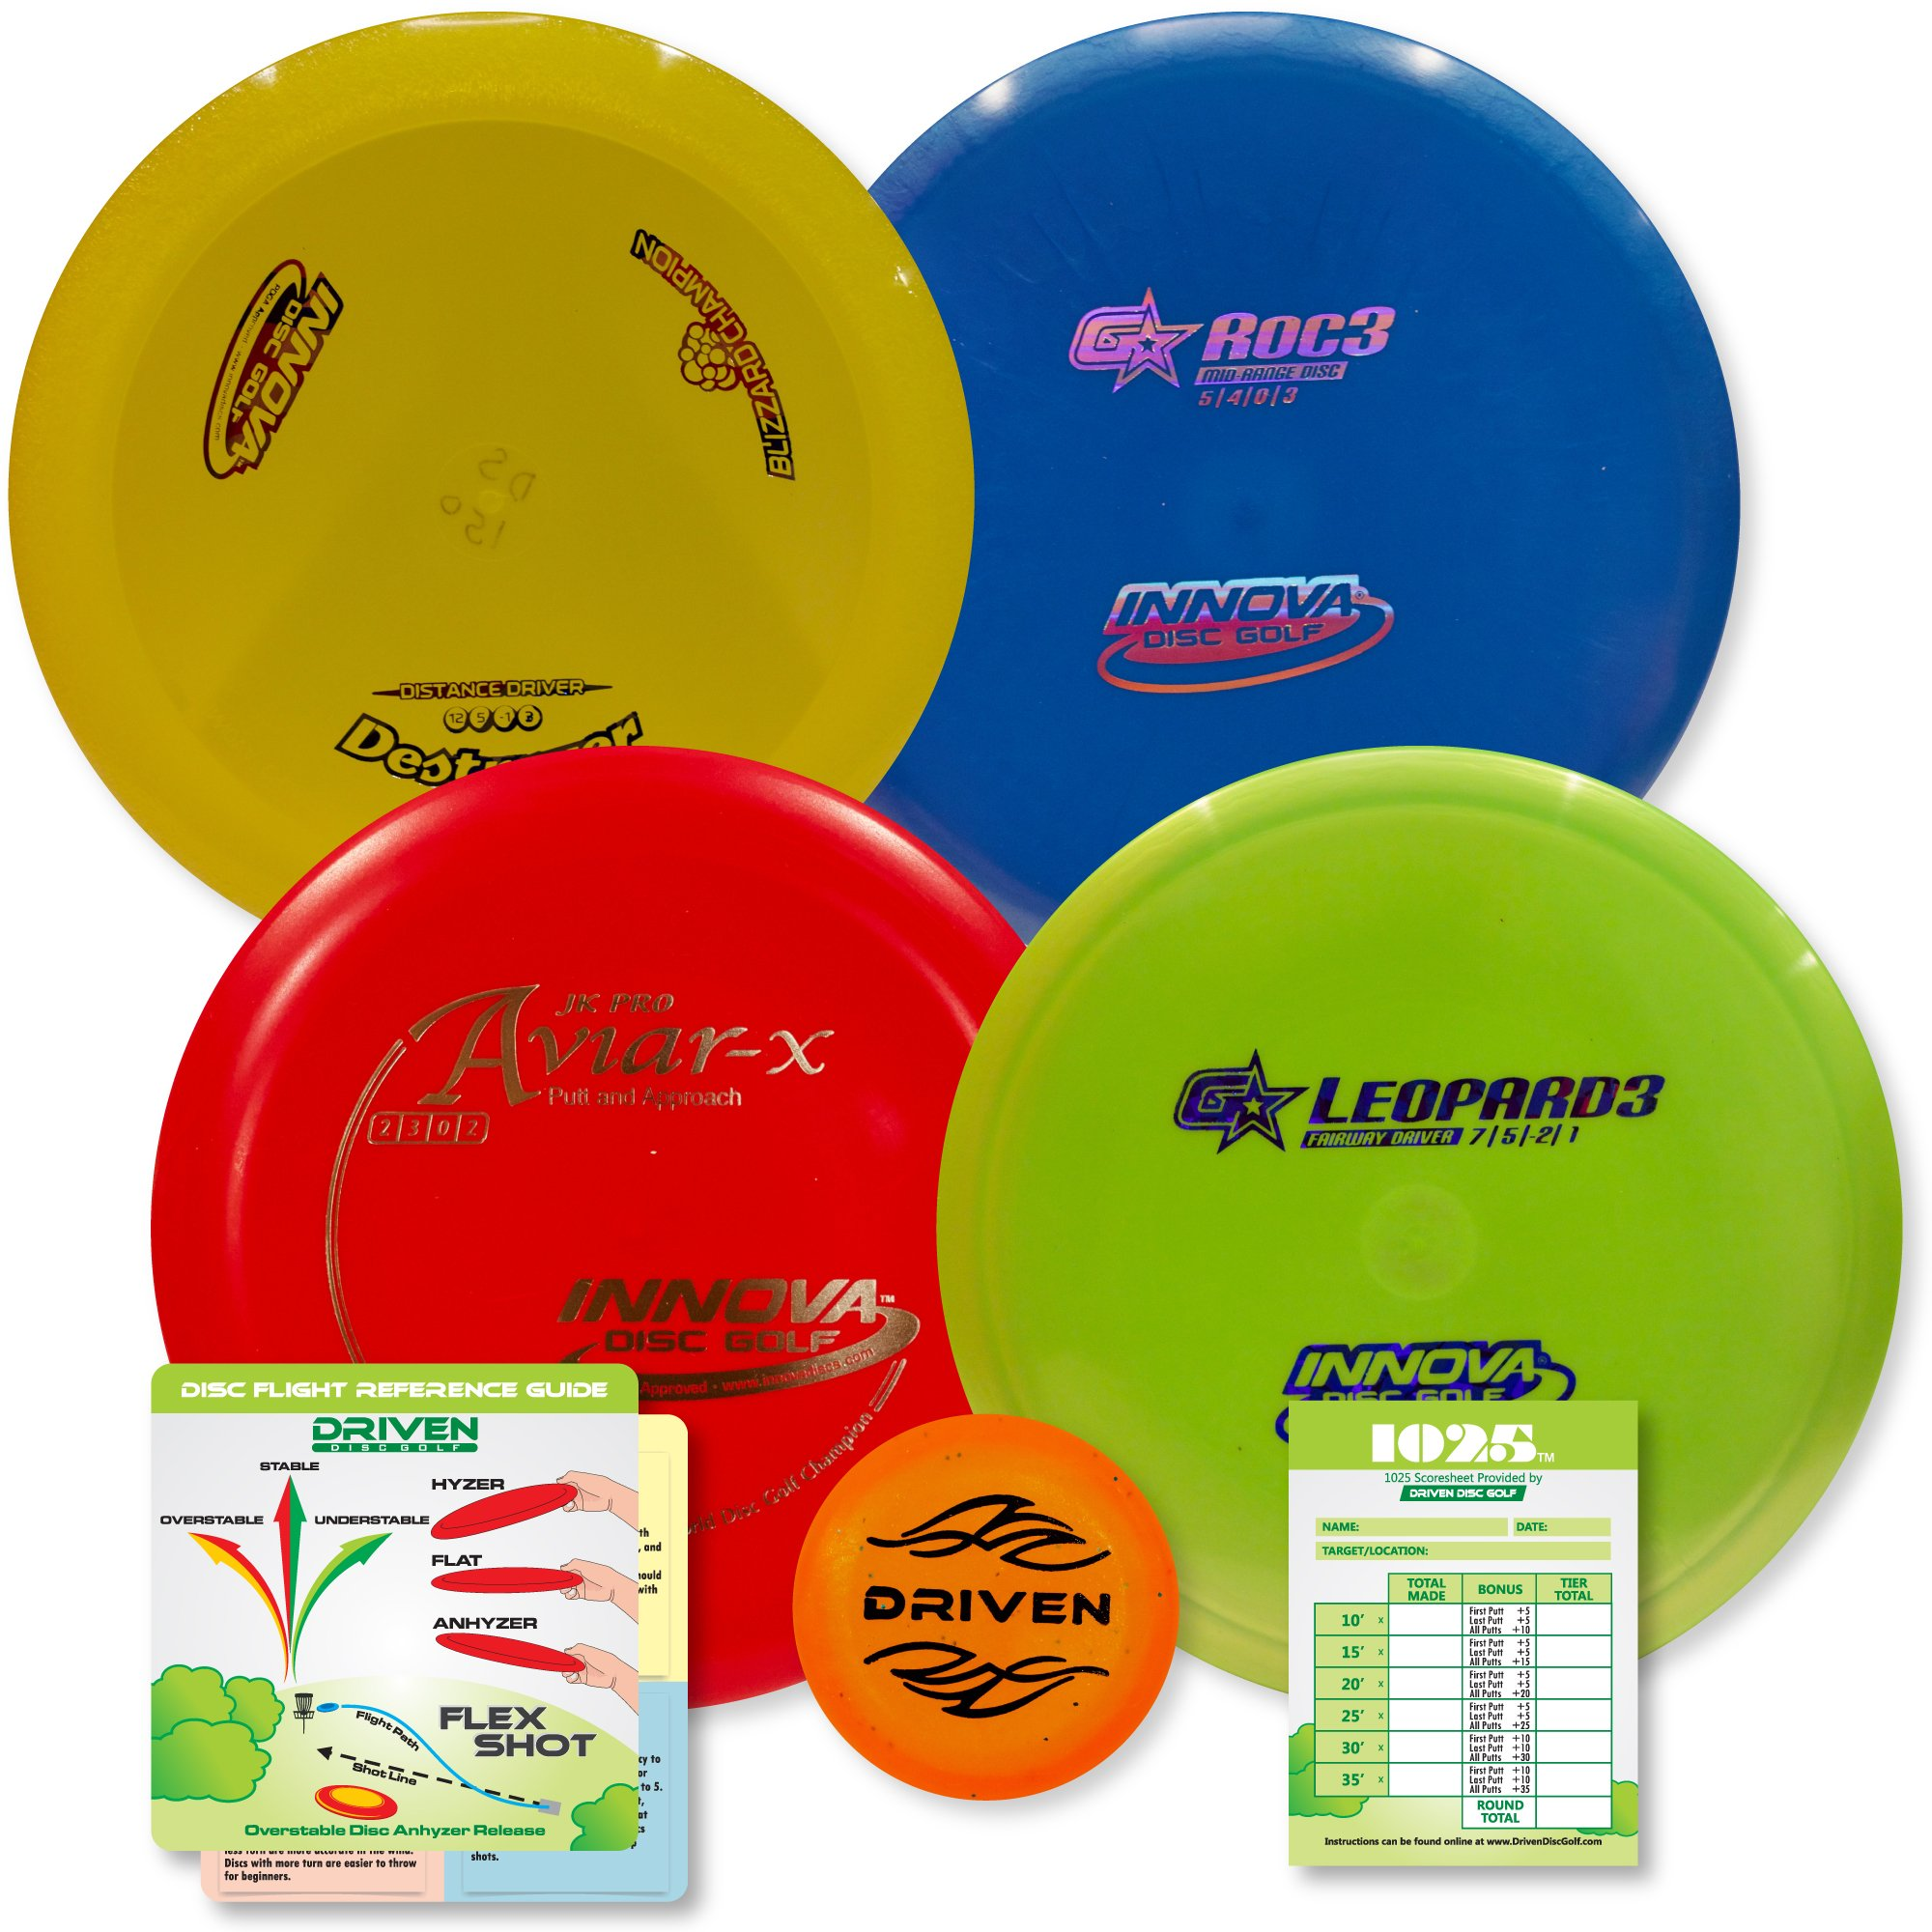 Innova Disc Golf Advanced Players Pack | Premium 4 Disc Set - for Intermediate and Experienced Players - 1025 Putting Game - Flight Reference Card - Driven Mini Marker | Disc Colors Vary